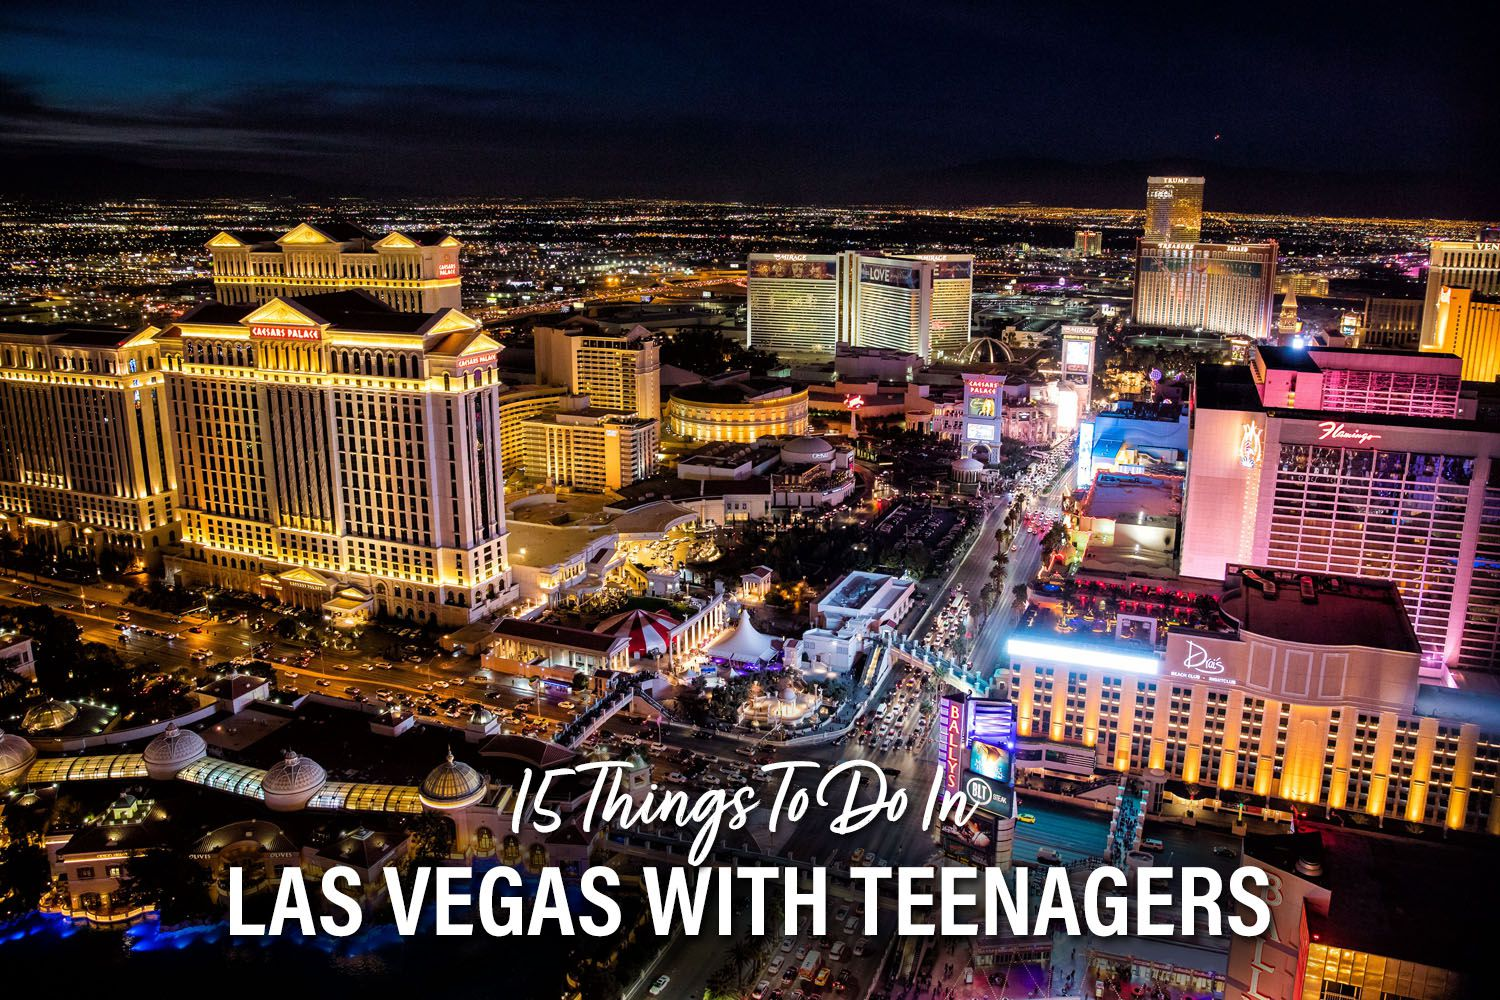 Las Vegas with Teenagers